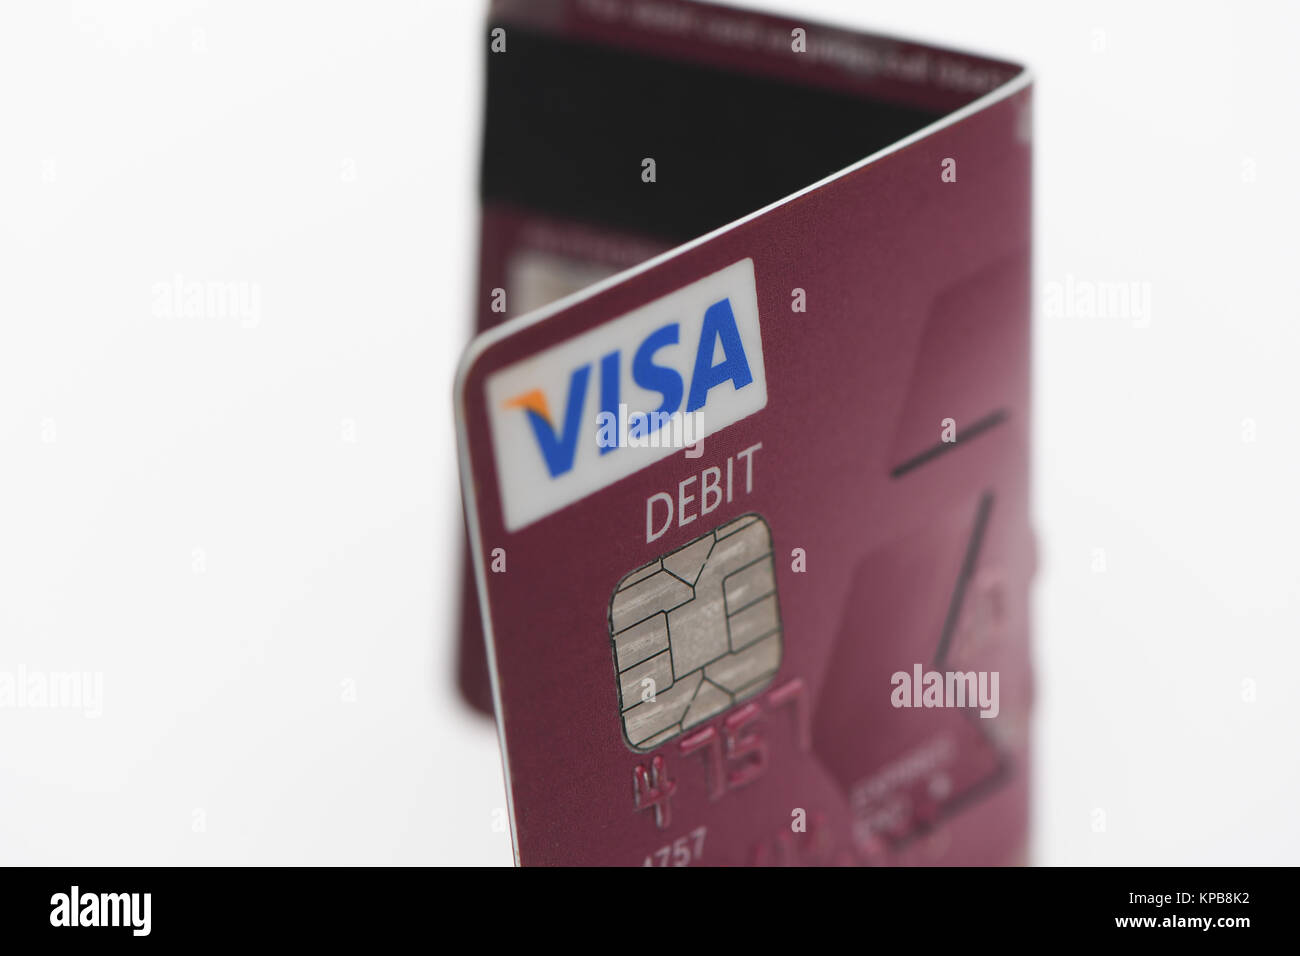 A folded Visa  debit card from Nat West on white background. - Stock Image